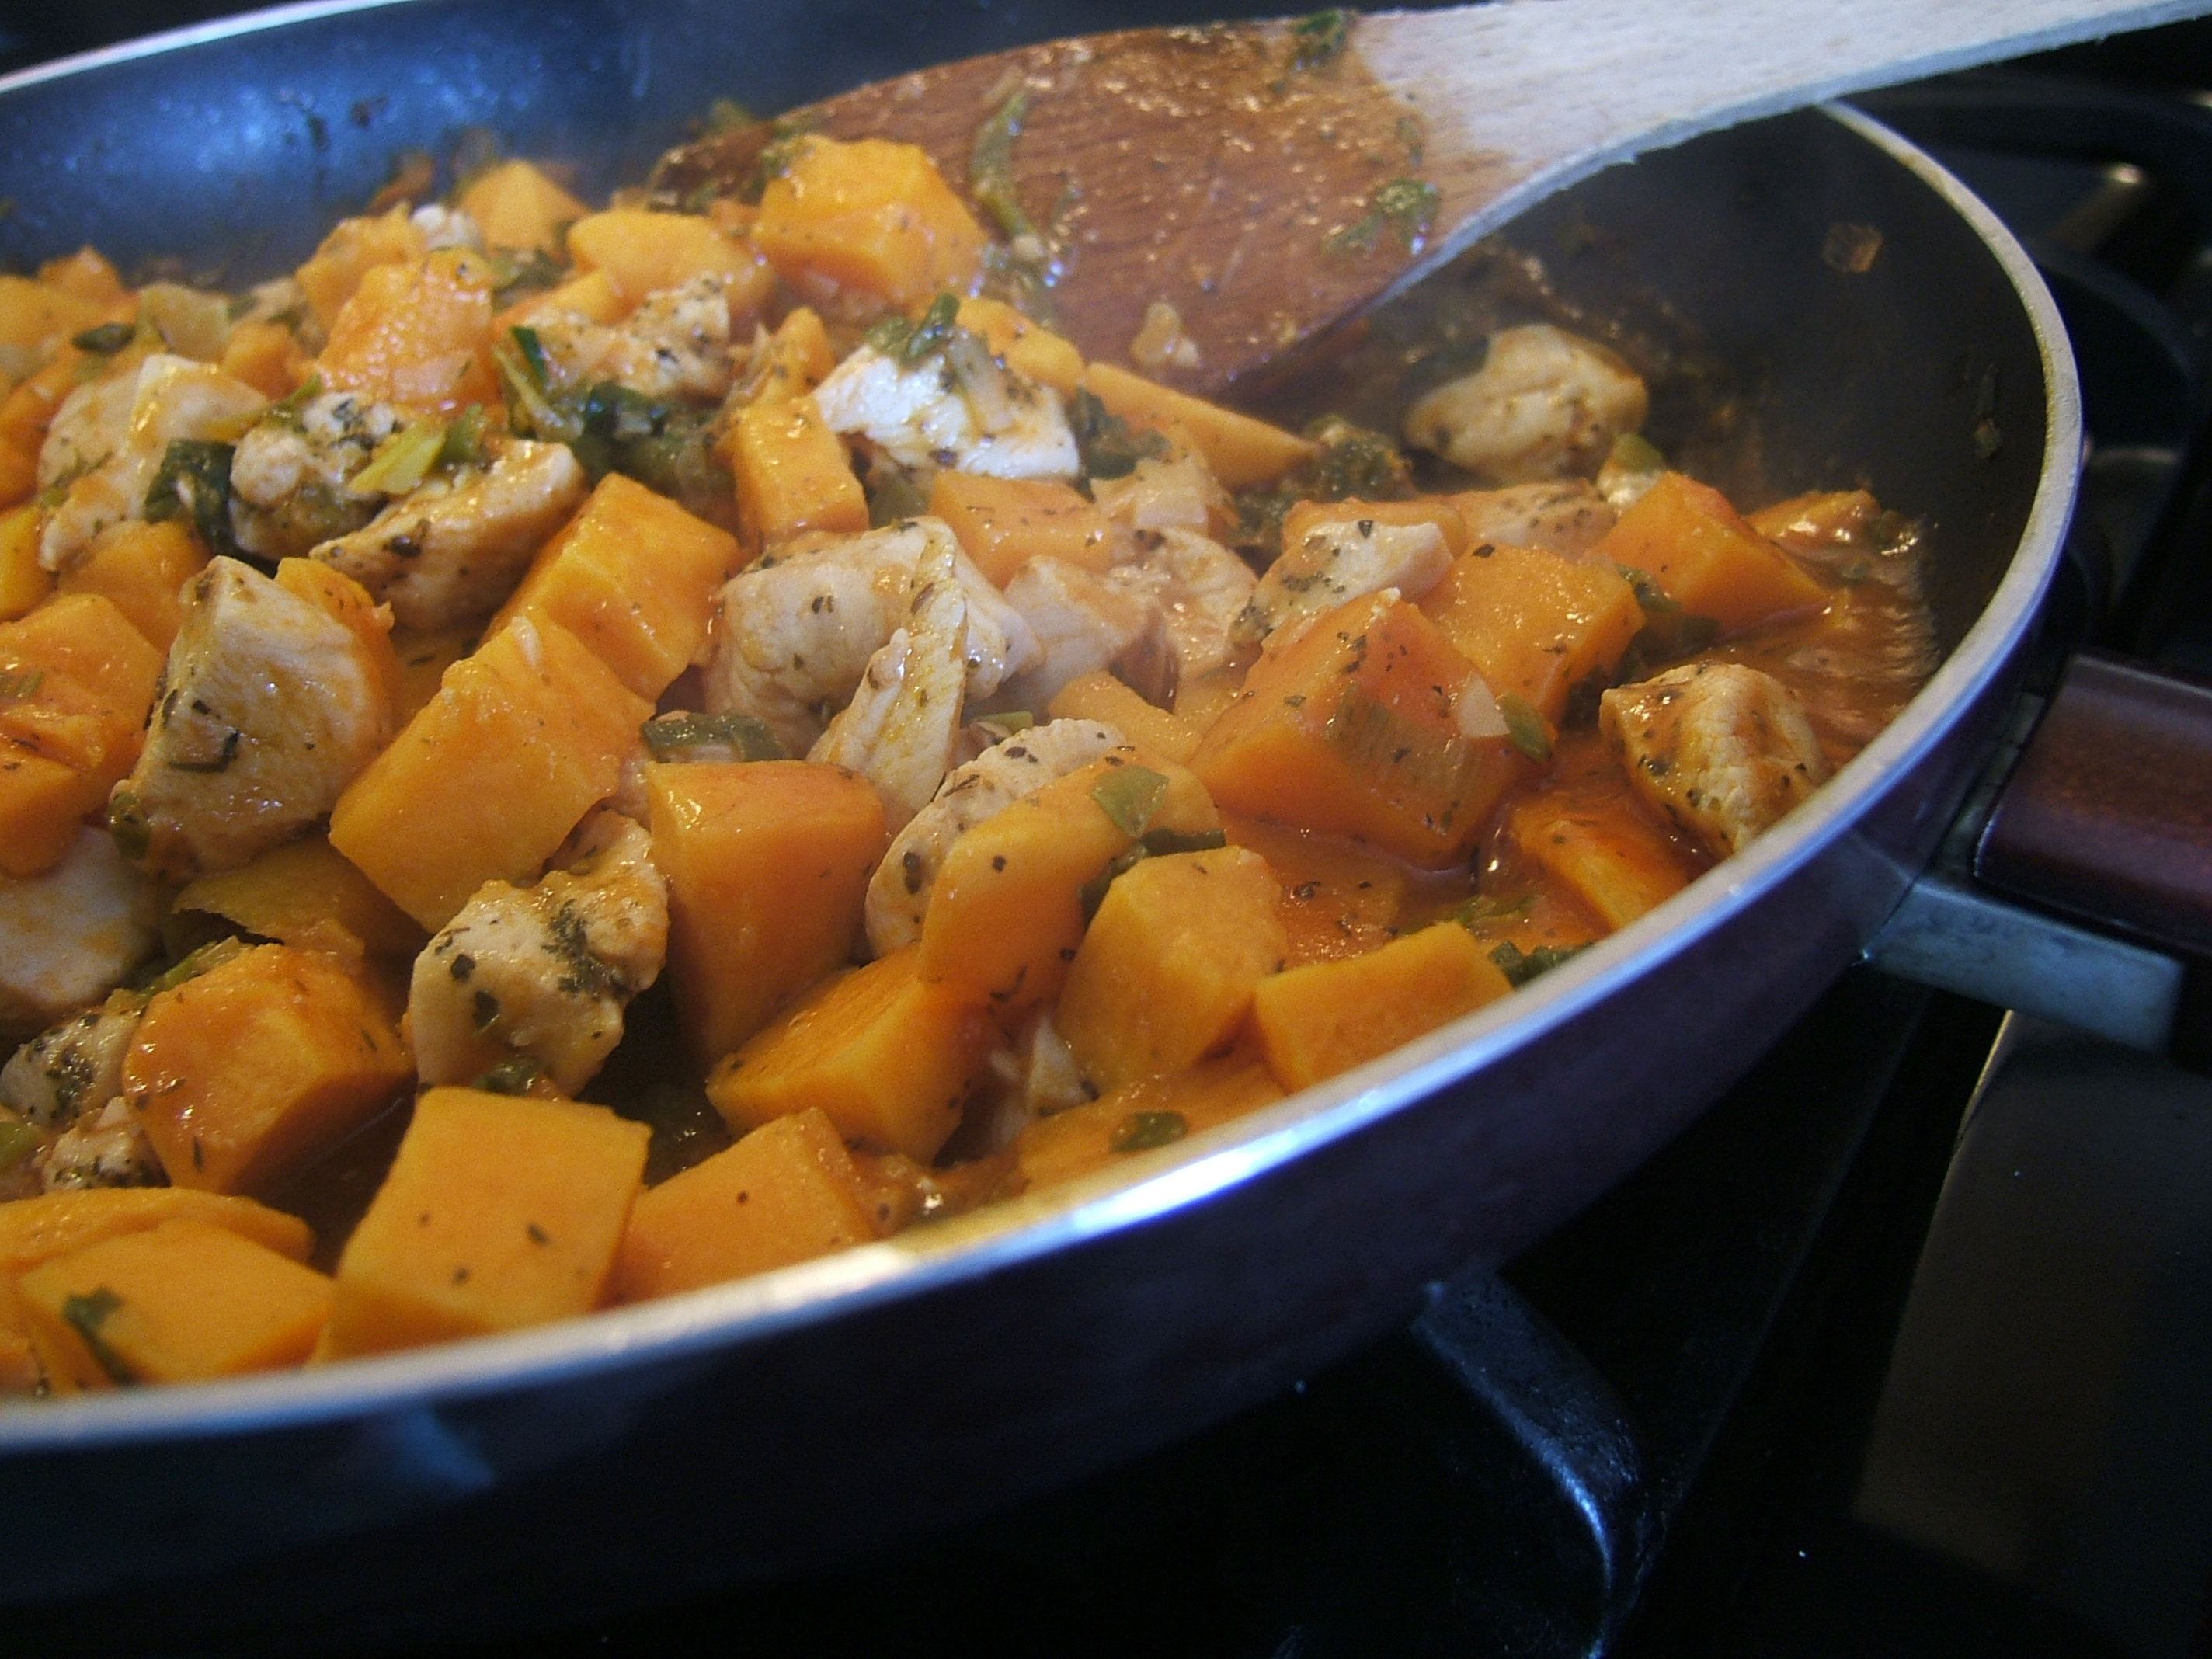 sweet potatoes sauteing in a skillet